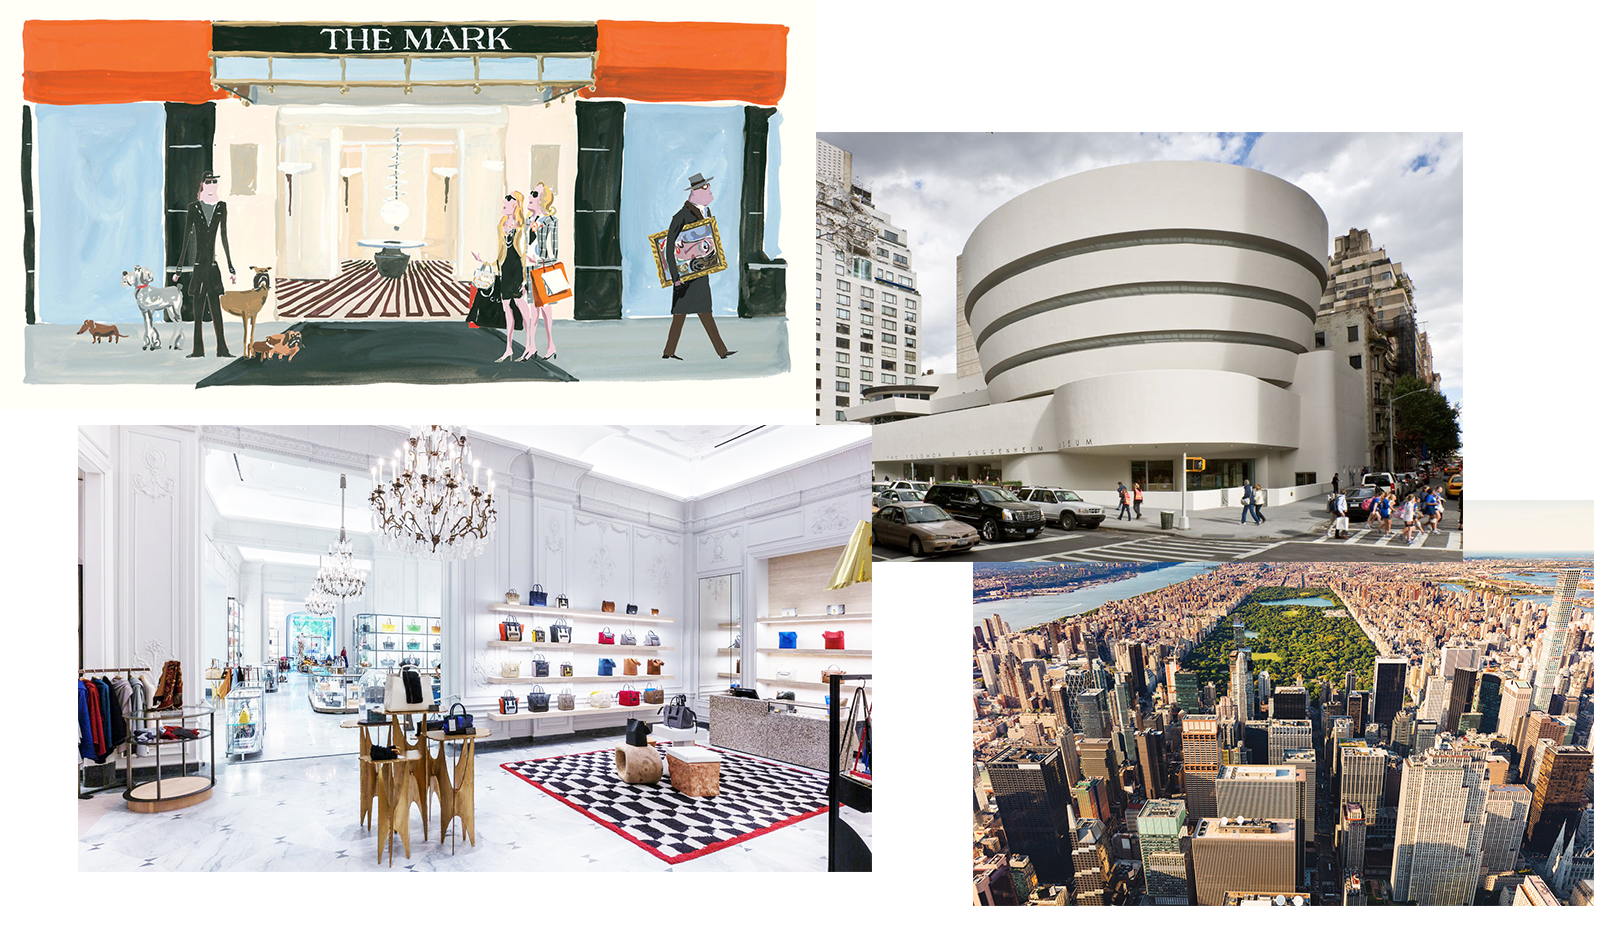 Image Source:  The Mark Hotel ,  The Guggenheim ,  Addicted to Retail